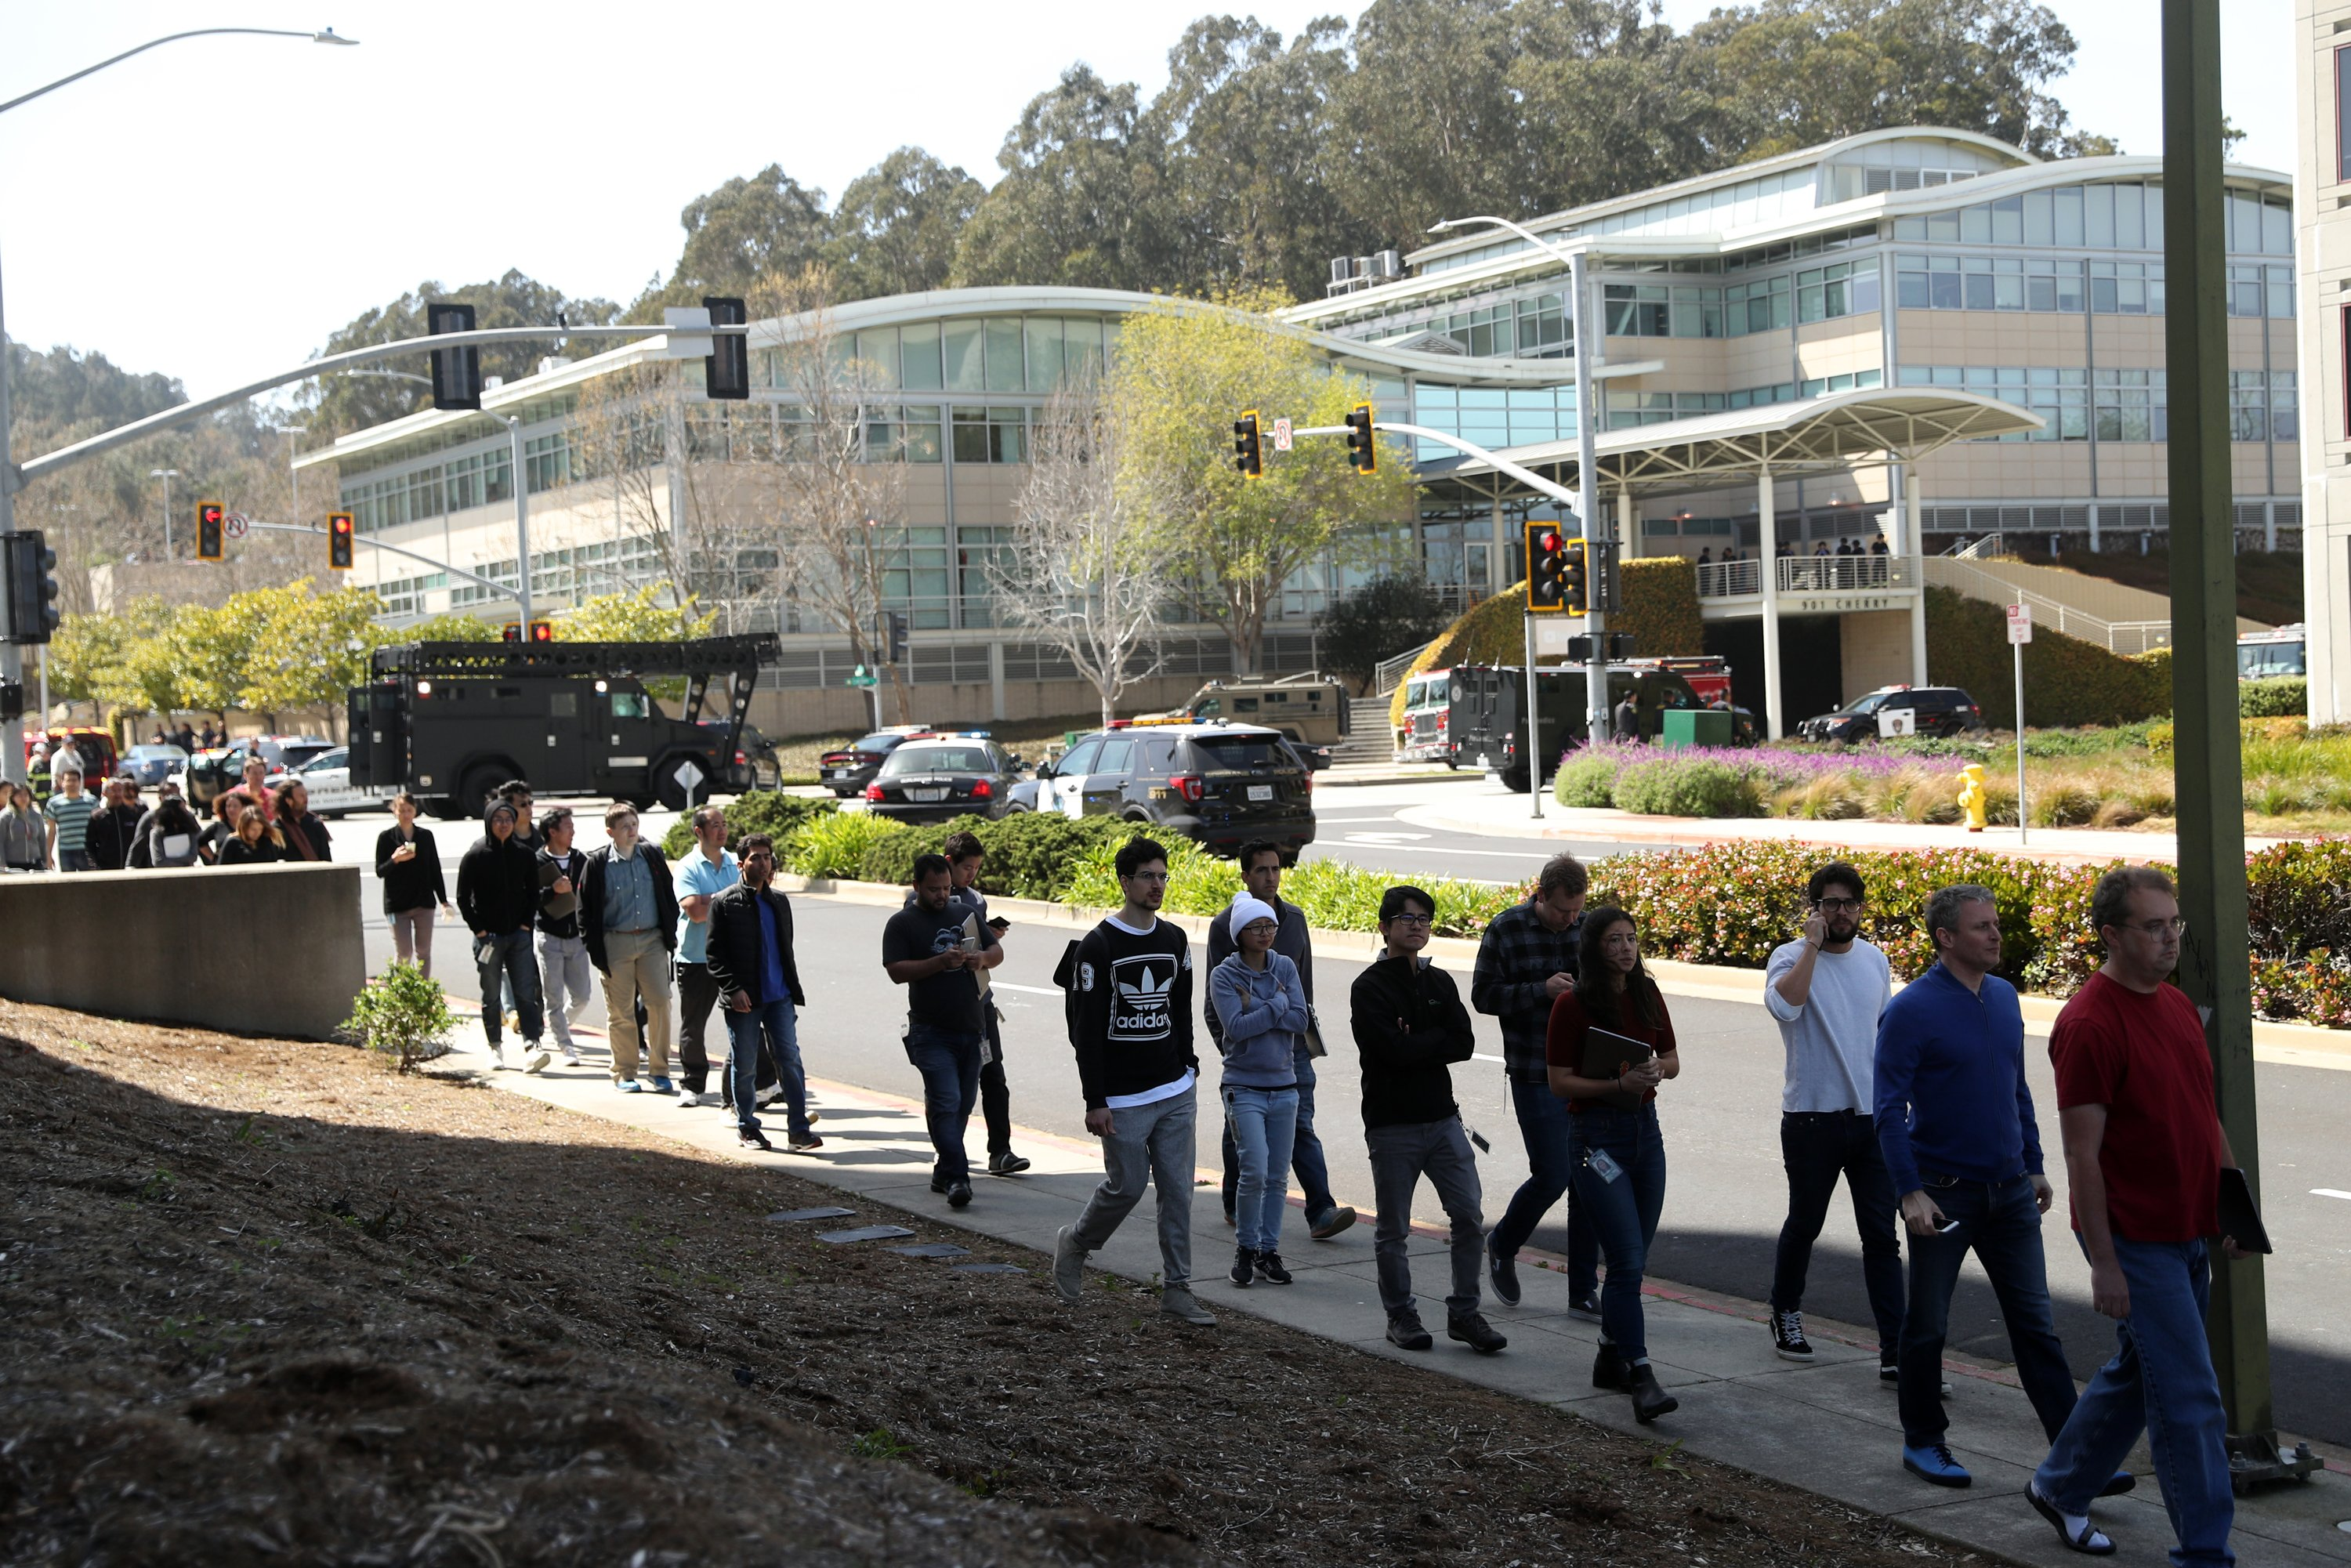 YouTube employees leave the scene after police responded to active shooter situation at YouTube facility in San Bruno.